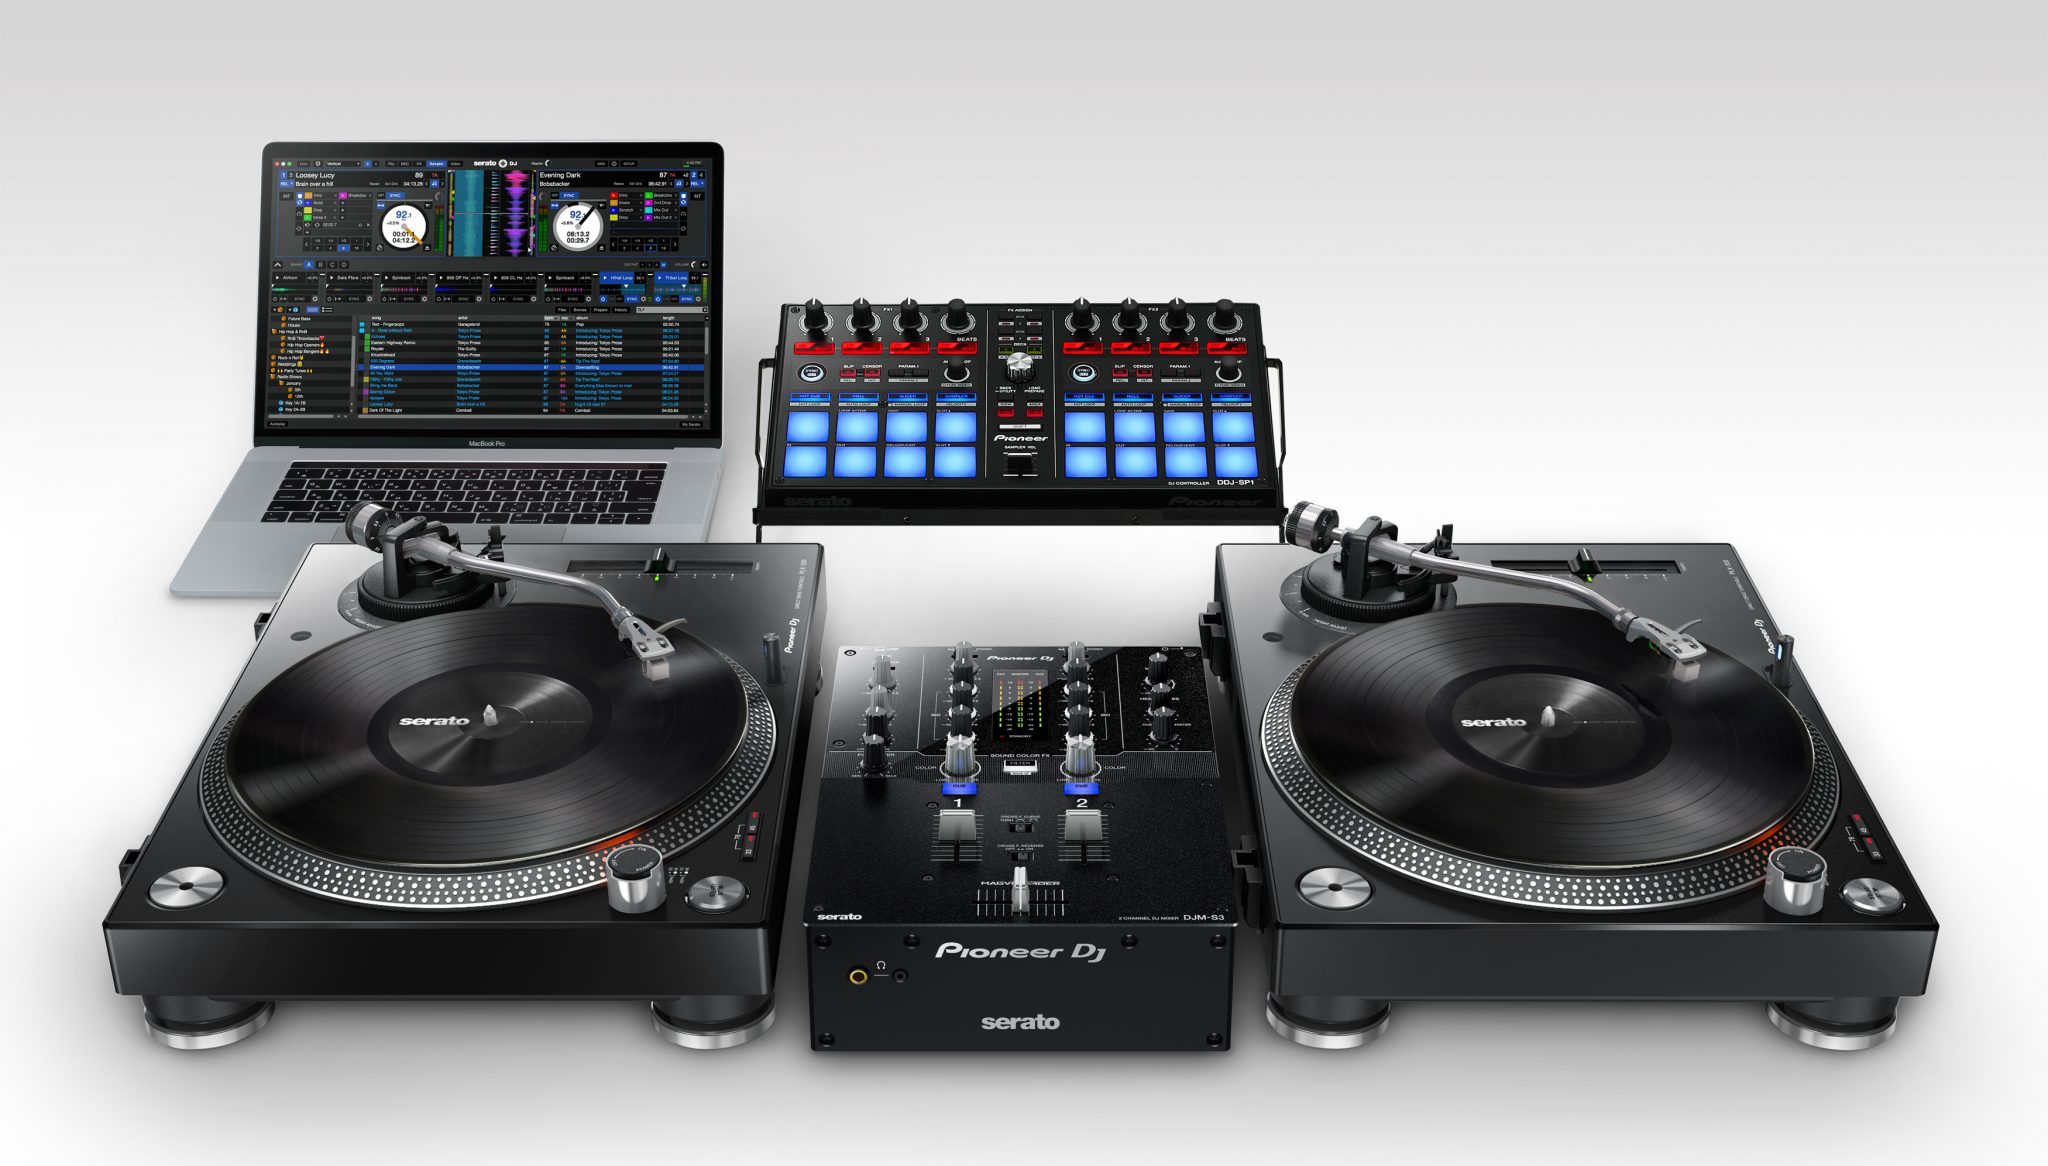 The Pioneer Dj Djm S3 Serato Dj Mixer Looks Familiar